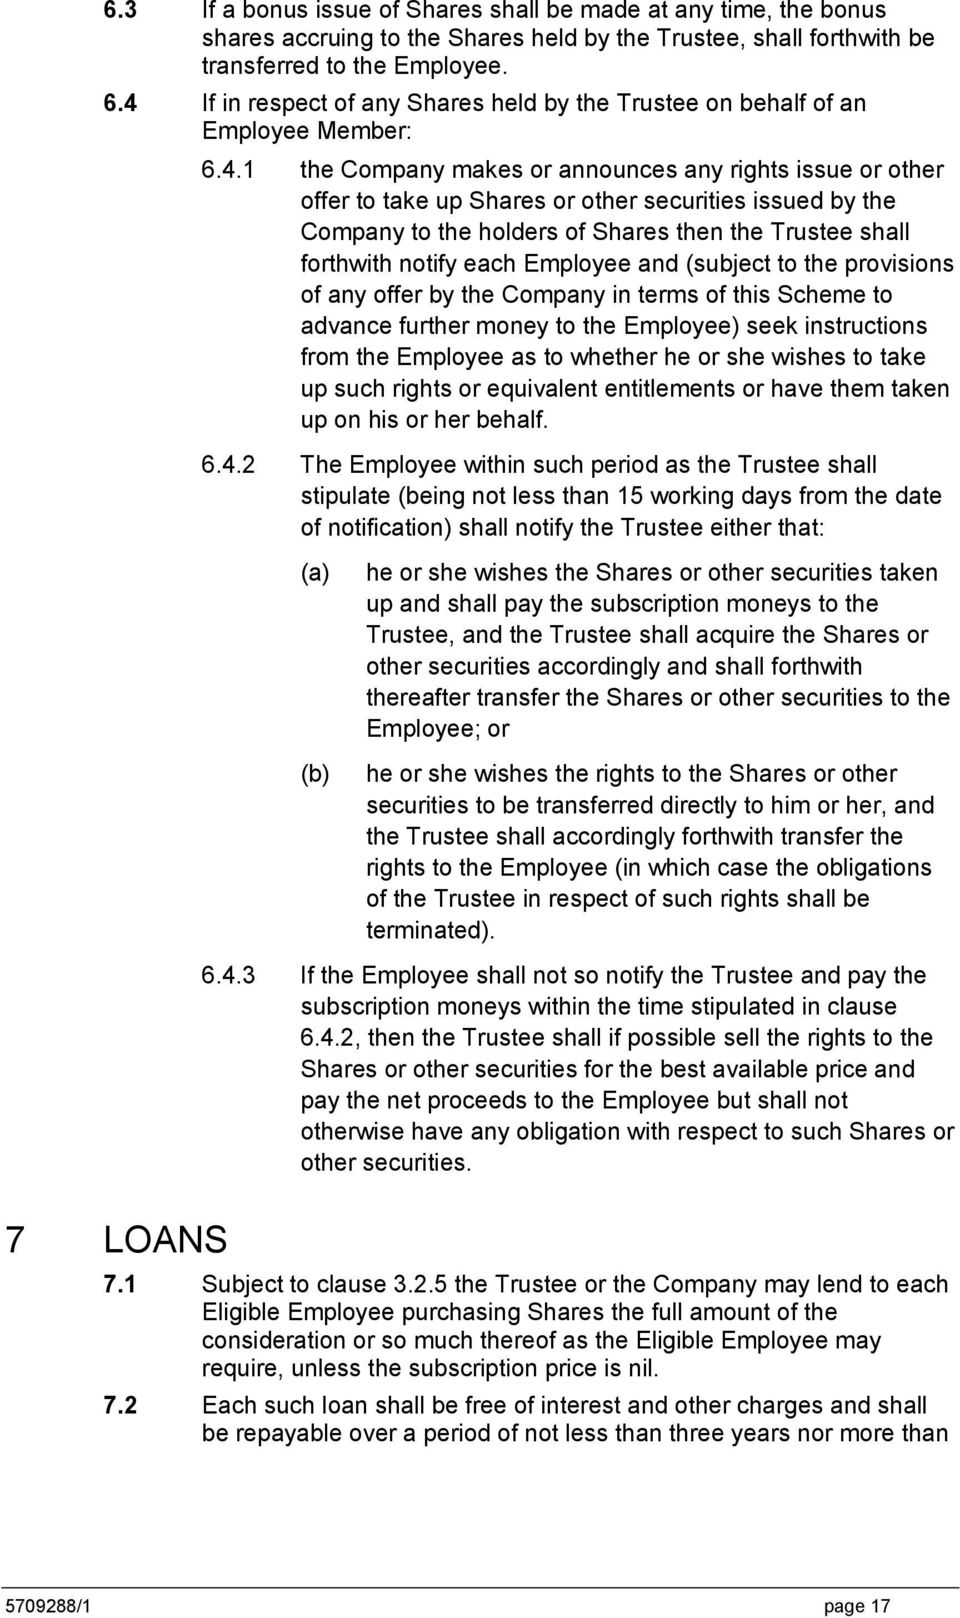 the Company to the holders of Shares then the Trustee shall forthwith notify each Employee and (subject to the provisions of any offer by the Company in terms of this Scheme to advance further money